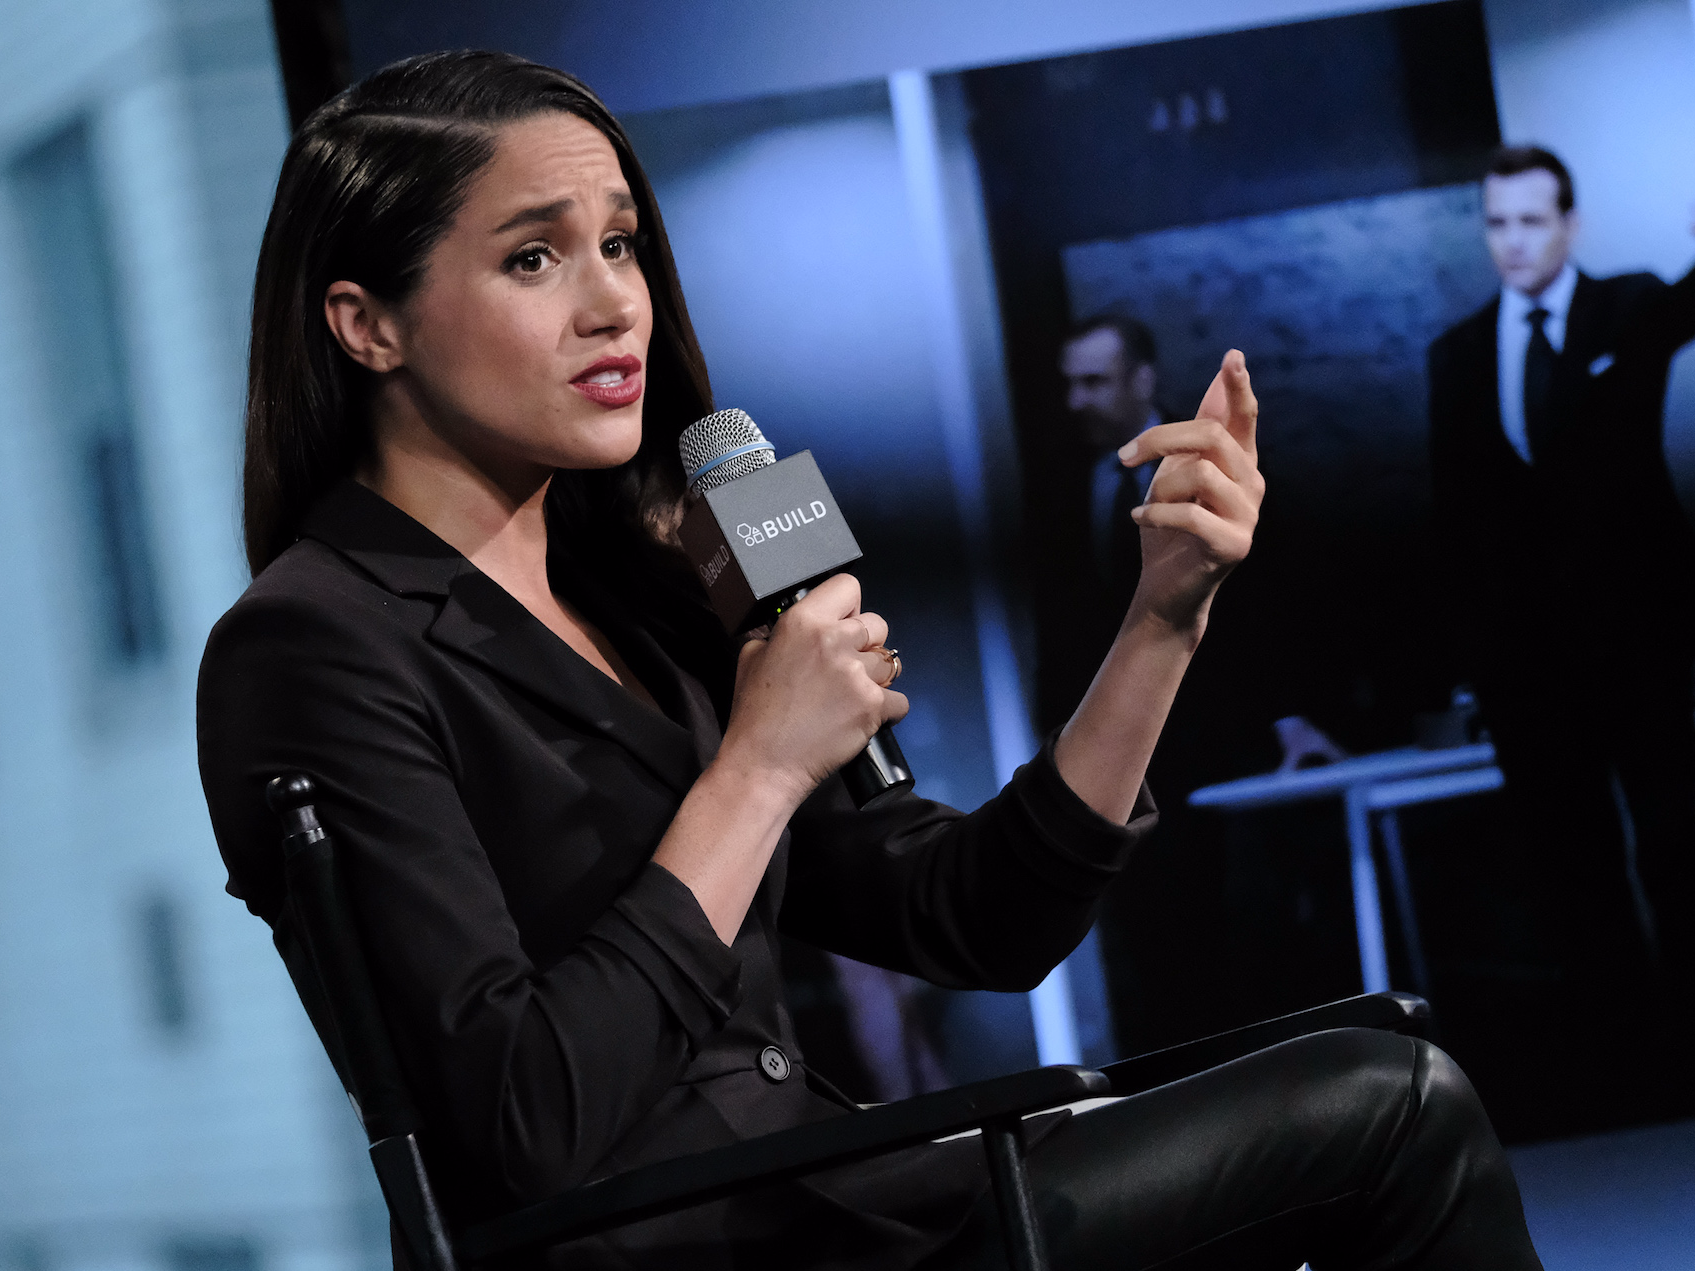 Resurfaced video shows a young Meghan Markle asking Procter & Gamble to change a commercial with sexist undertones